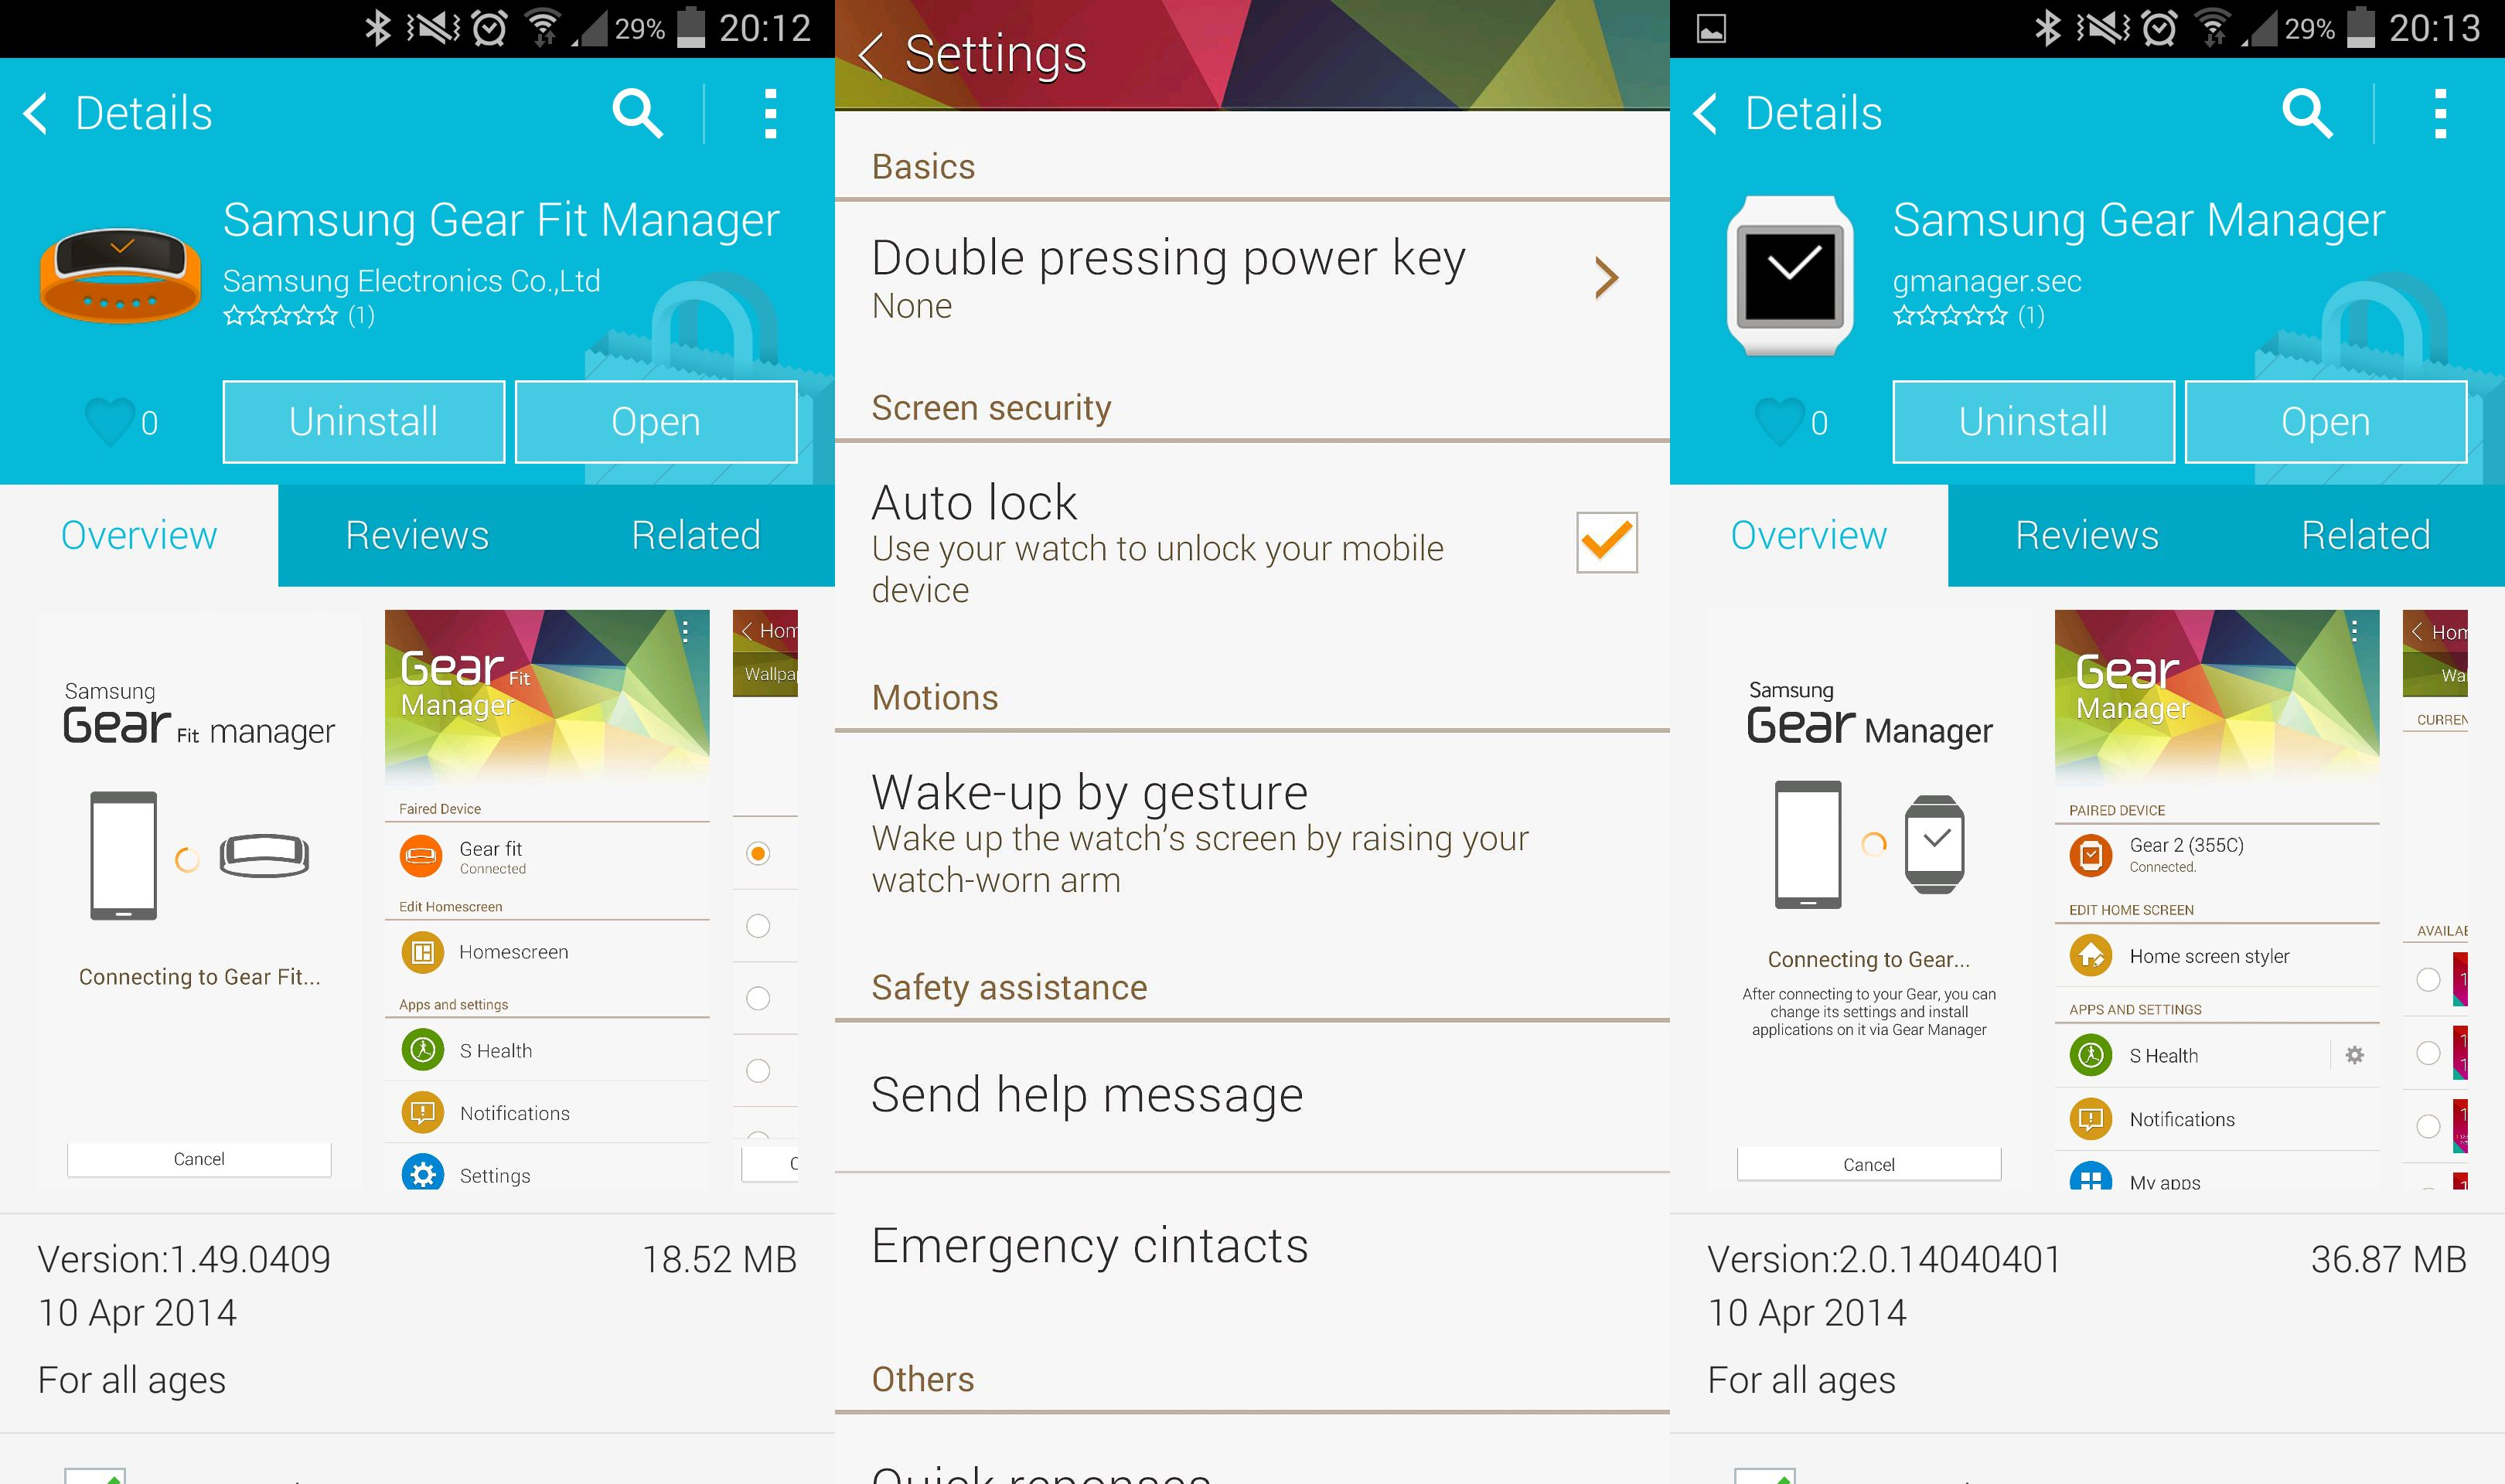 apps for galaxy gear fit | Fitness and Workout